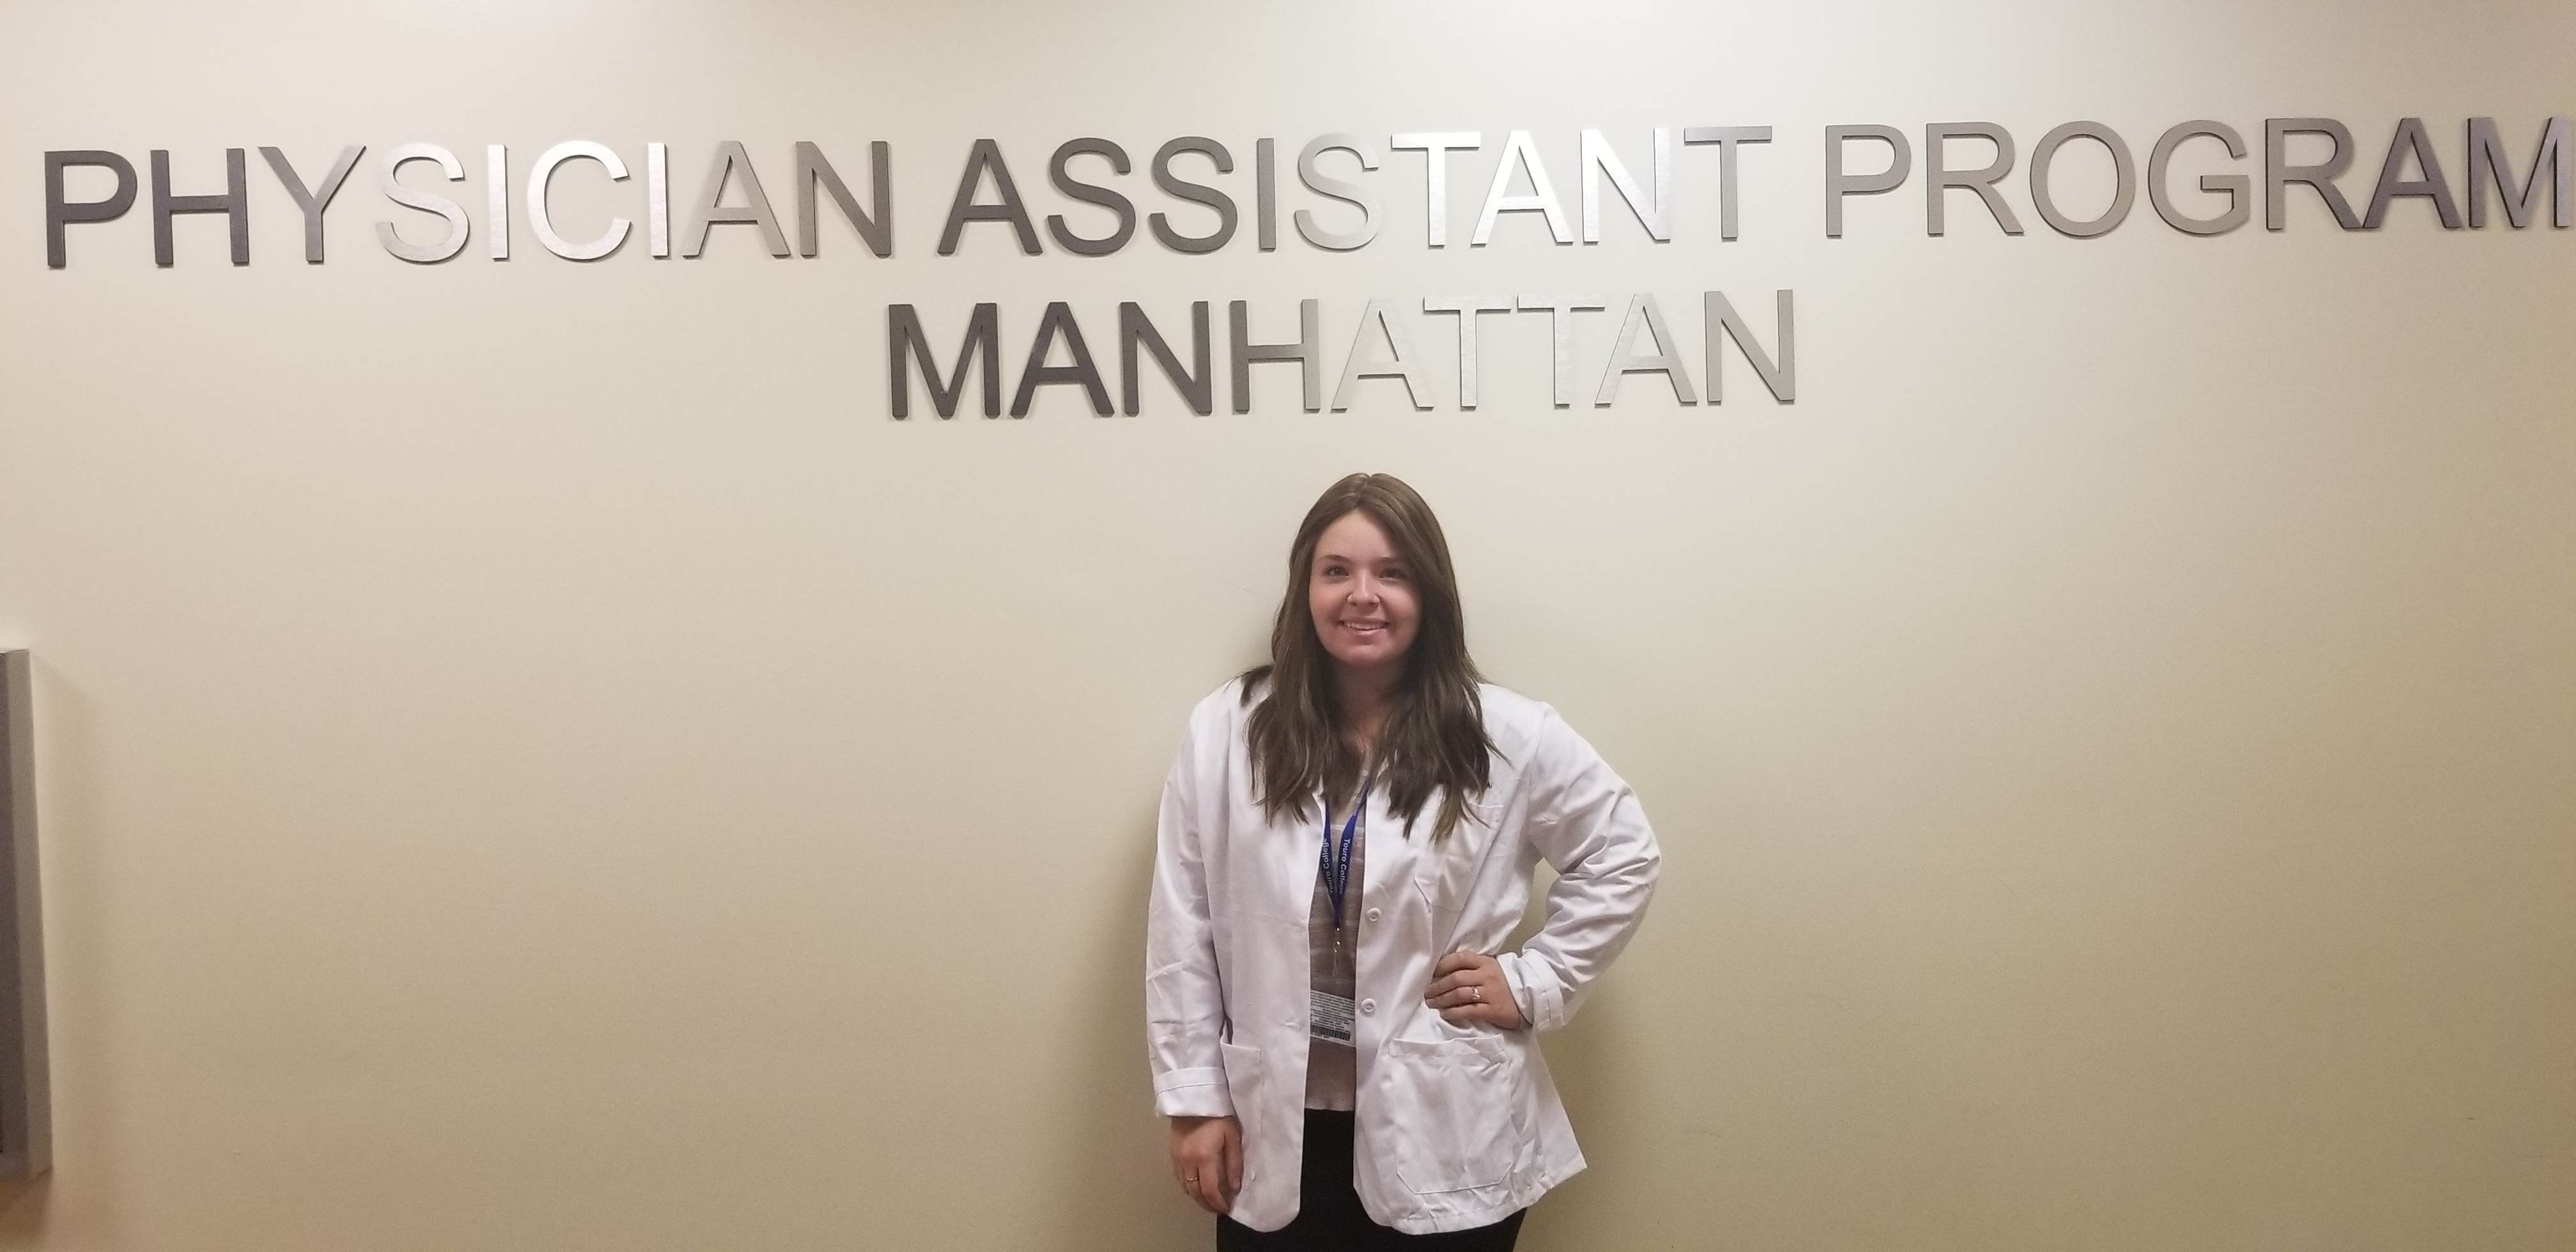 Bracha Buff, a Physician Assistant Student at Touro College\'s School of Health Sciences